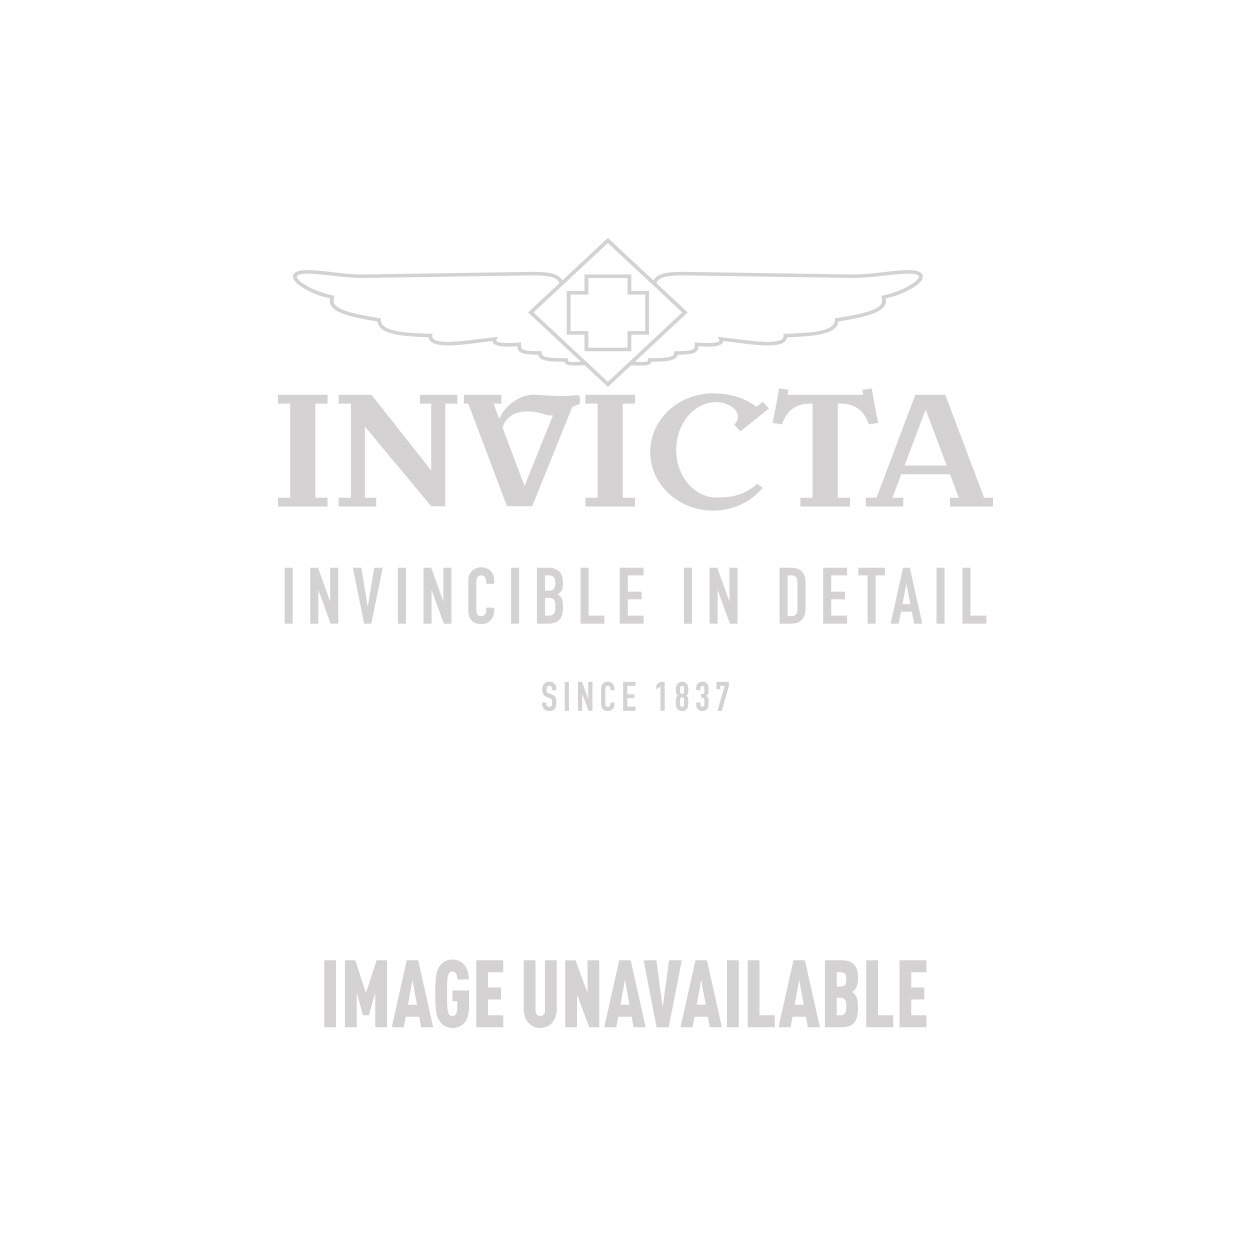 Invicta Sea Base Automatic Watch - Gold, Stainless Steel case with Steel, Gold tone Stainless Steel band - Model 17921